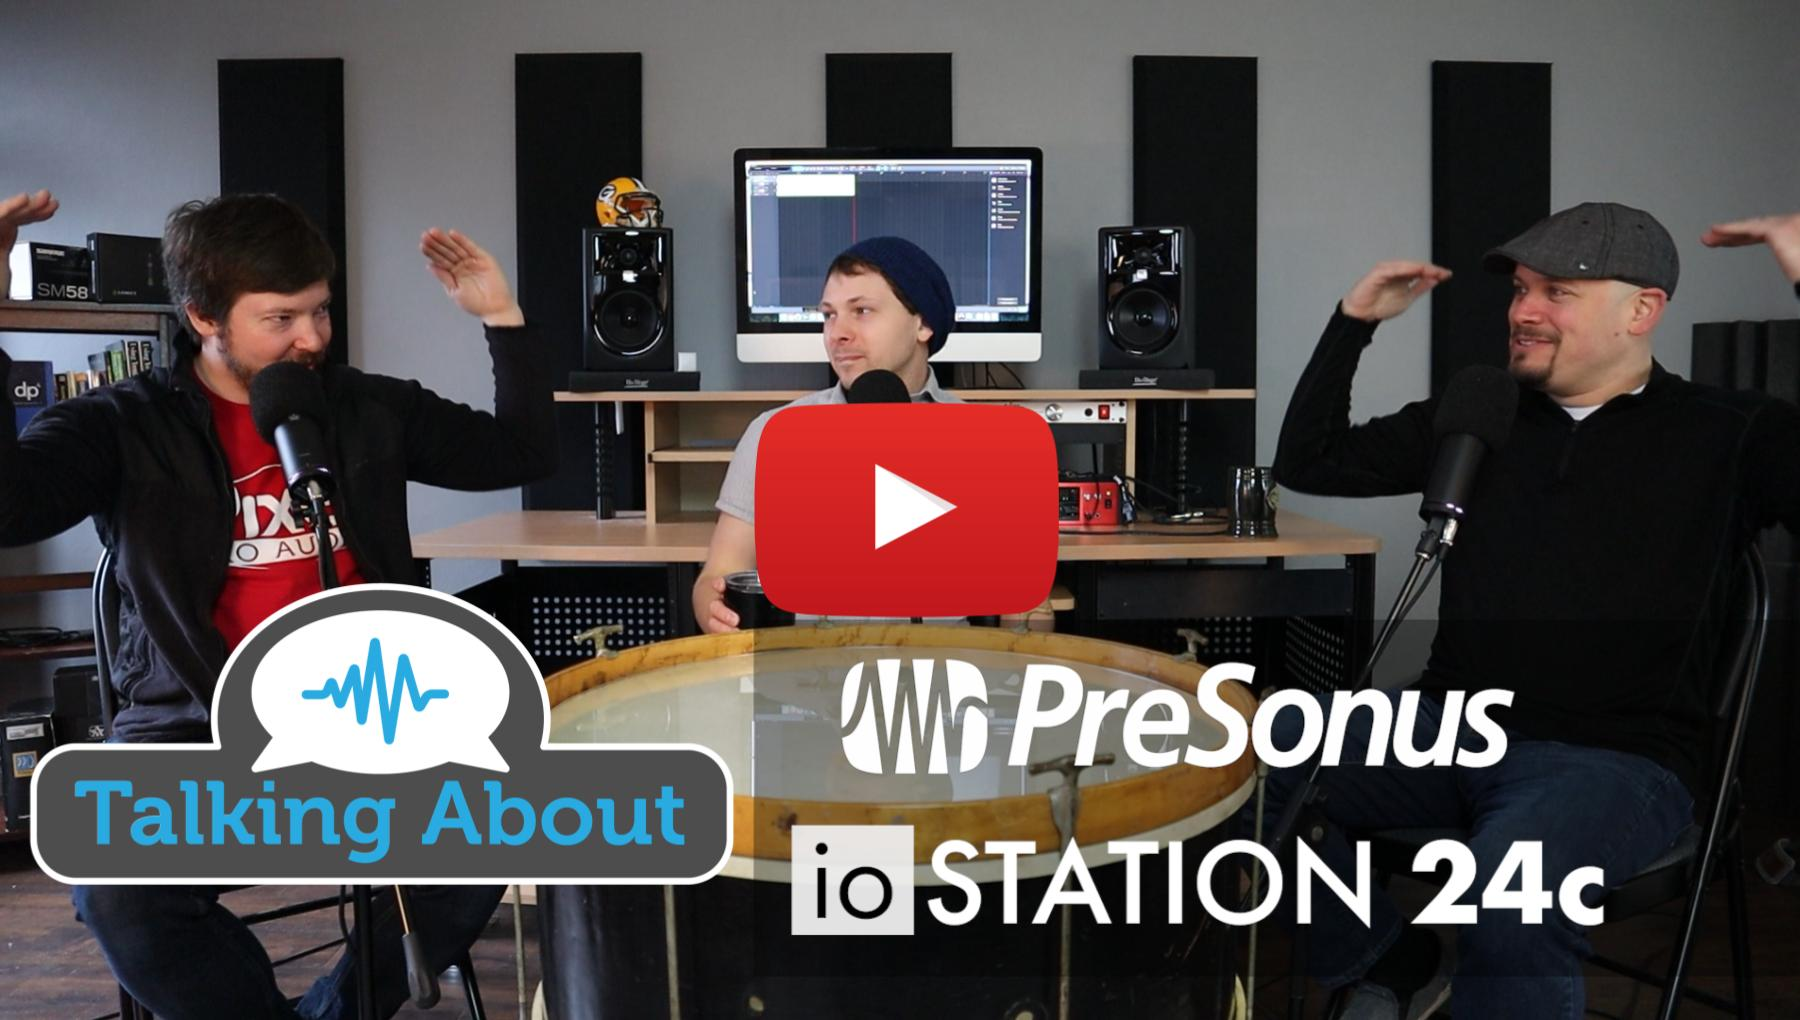 Weekly Show - PPA Unfiltered - PreSonus ioStation 24c